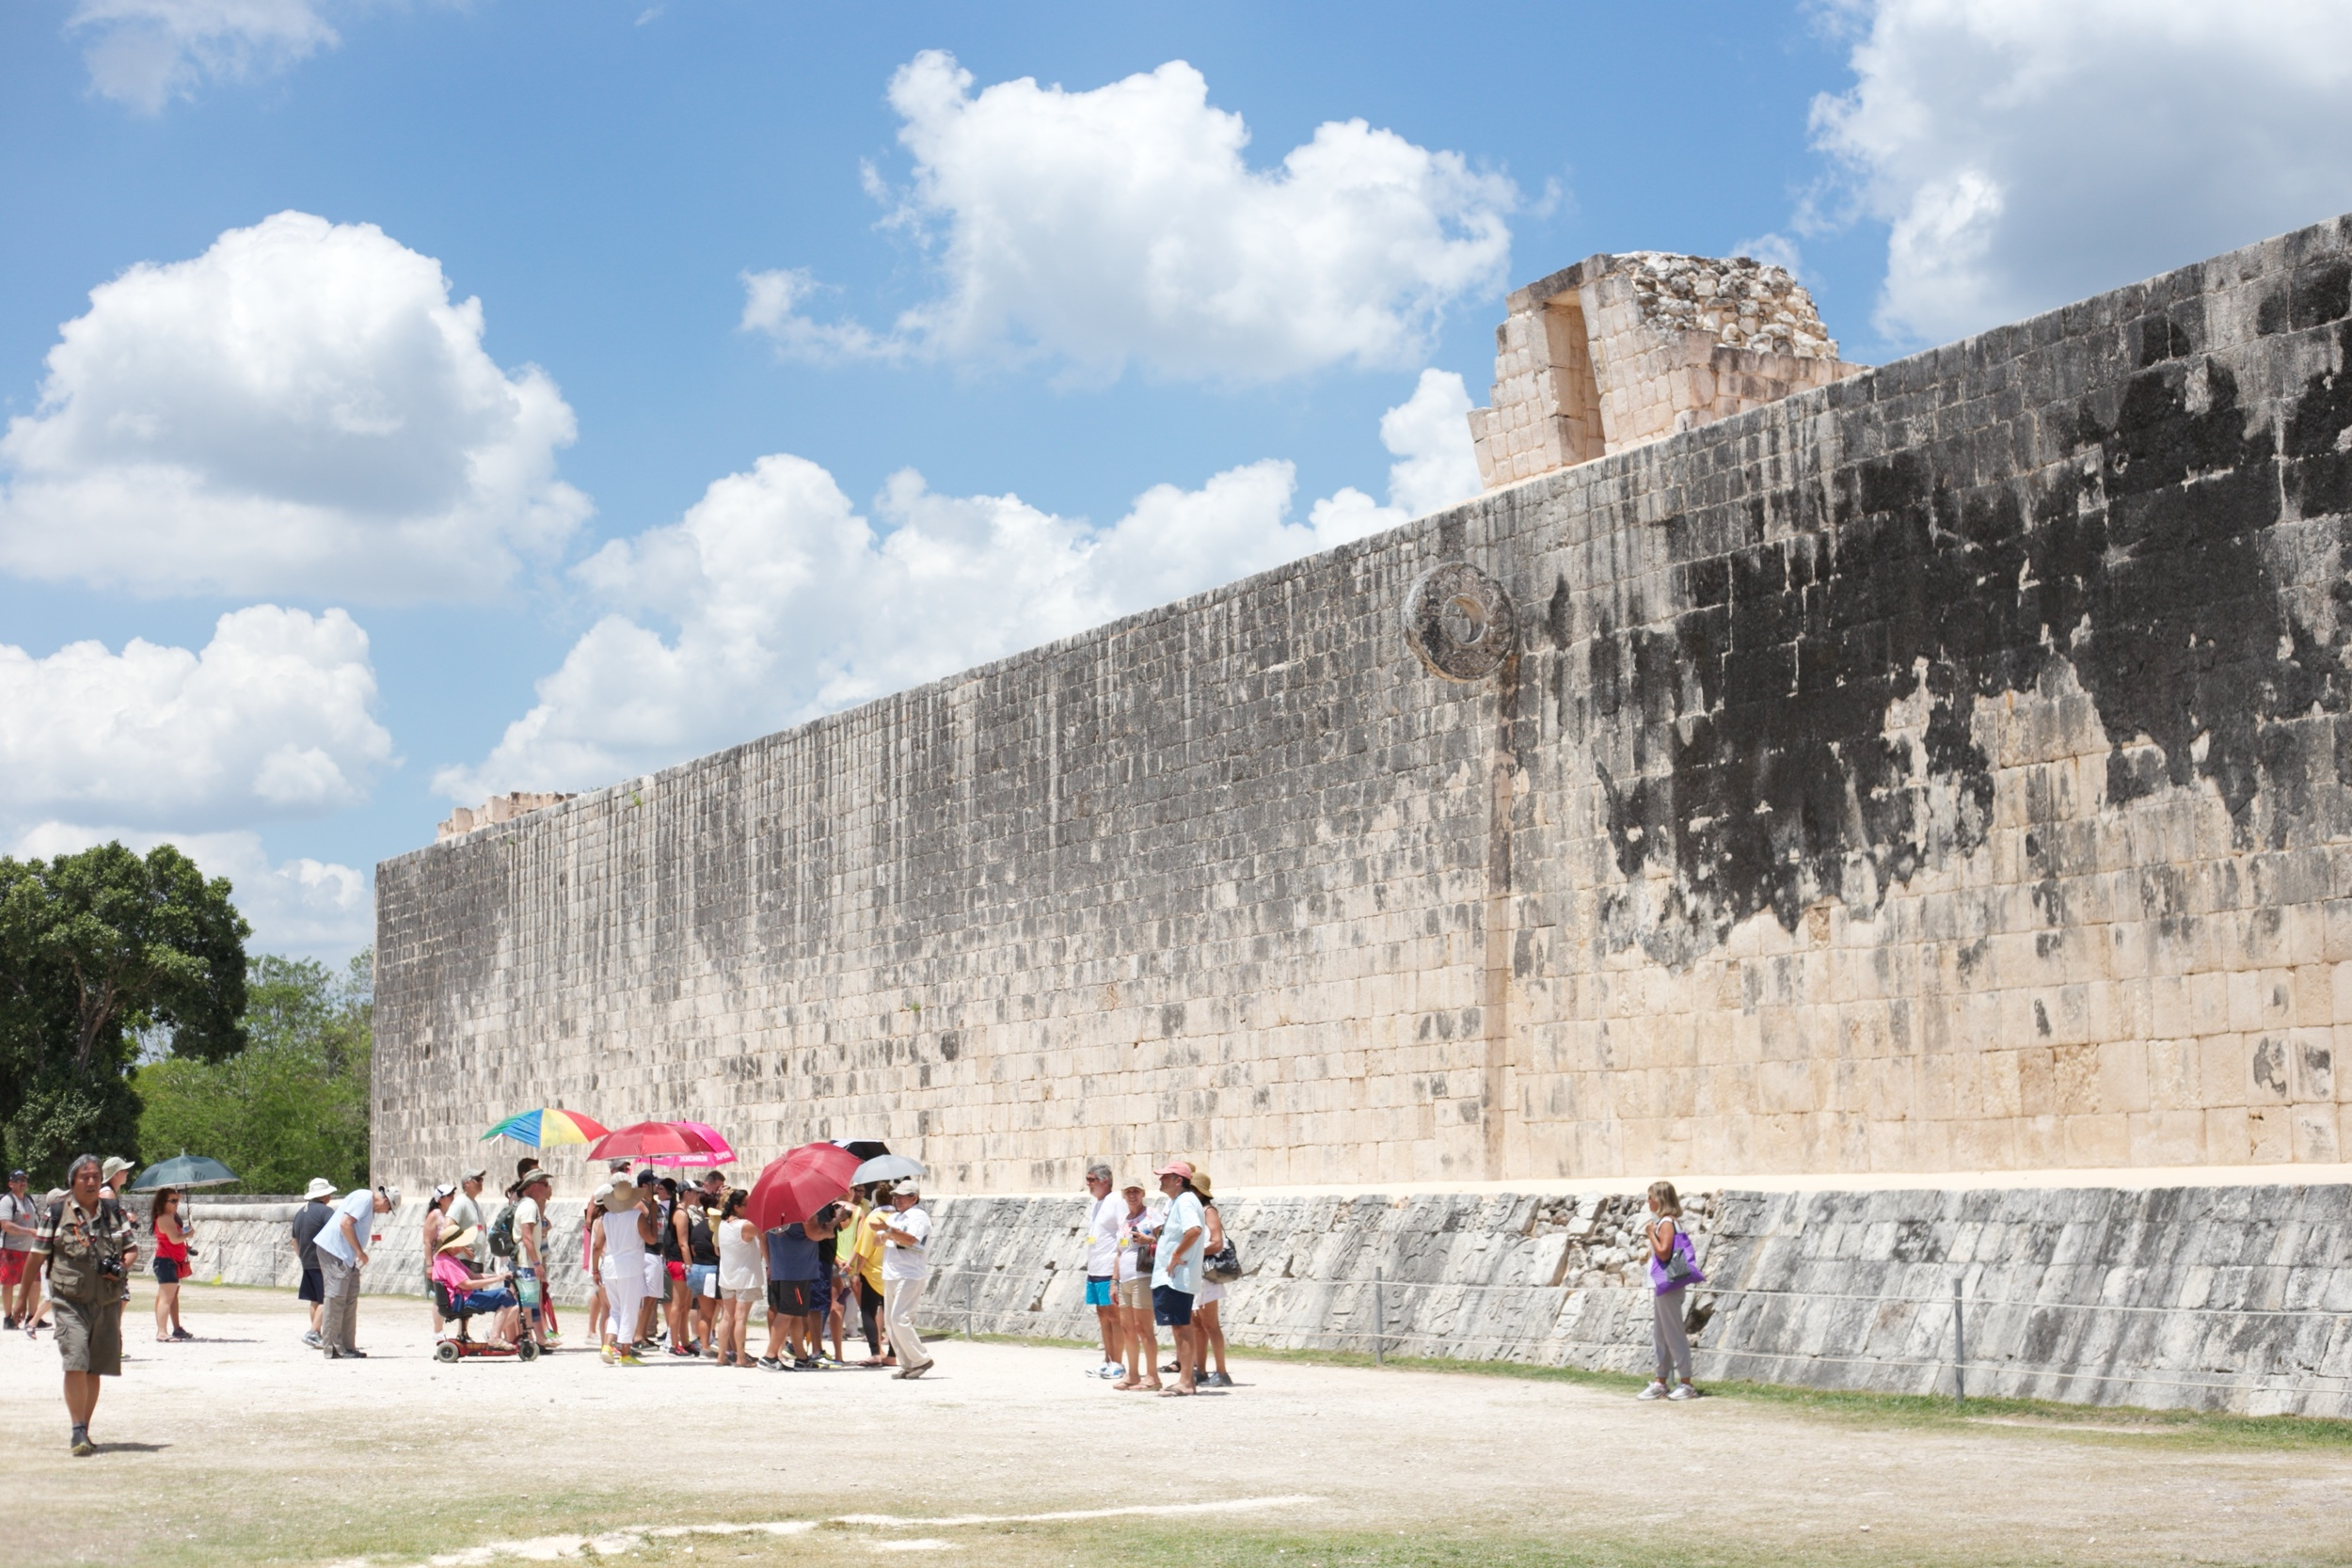 The Great Ball Court at Chichen Itza where the Mayans would play ball.